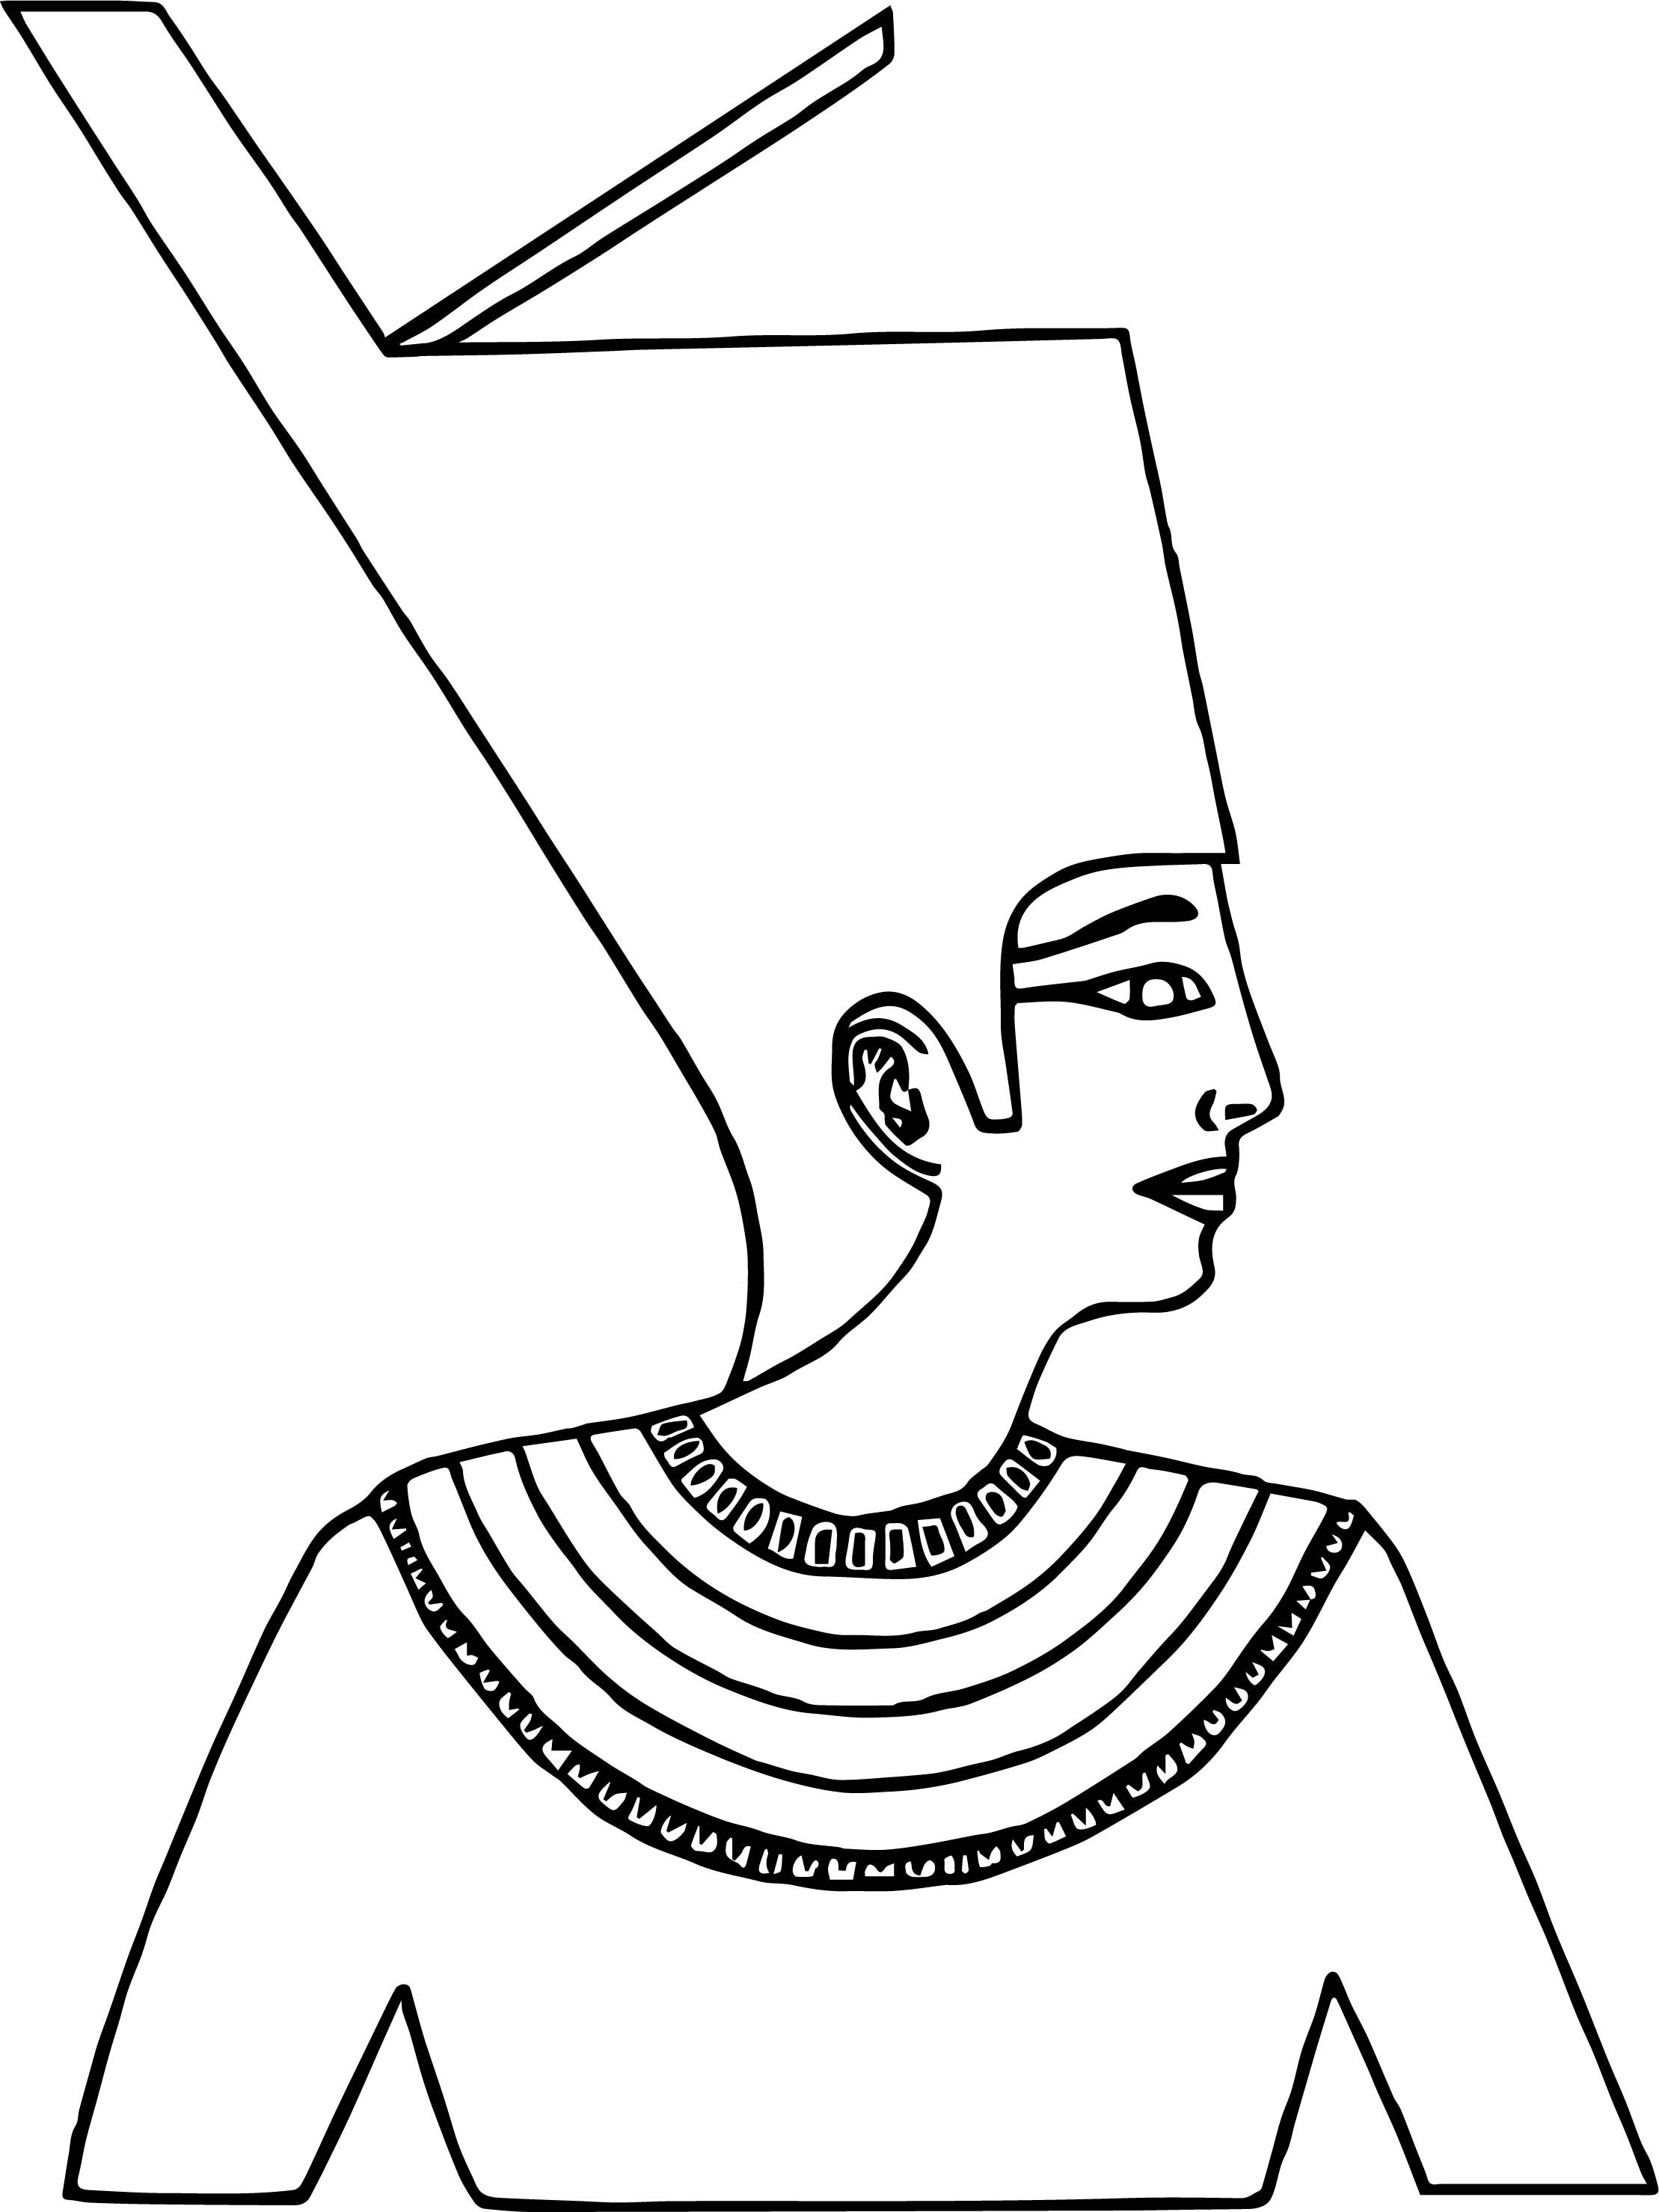 cool Crown Face Coloring Page Coloring pages, Coloring